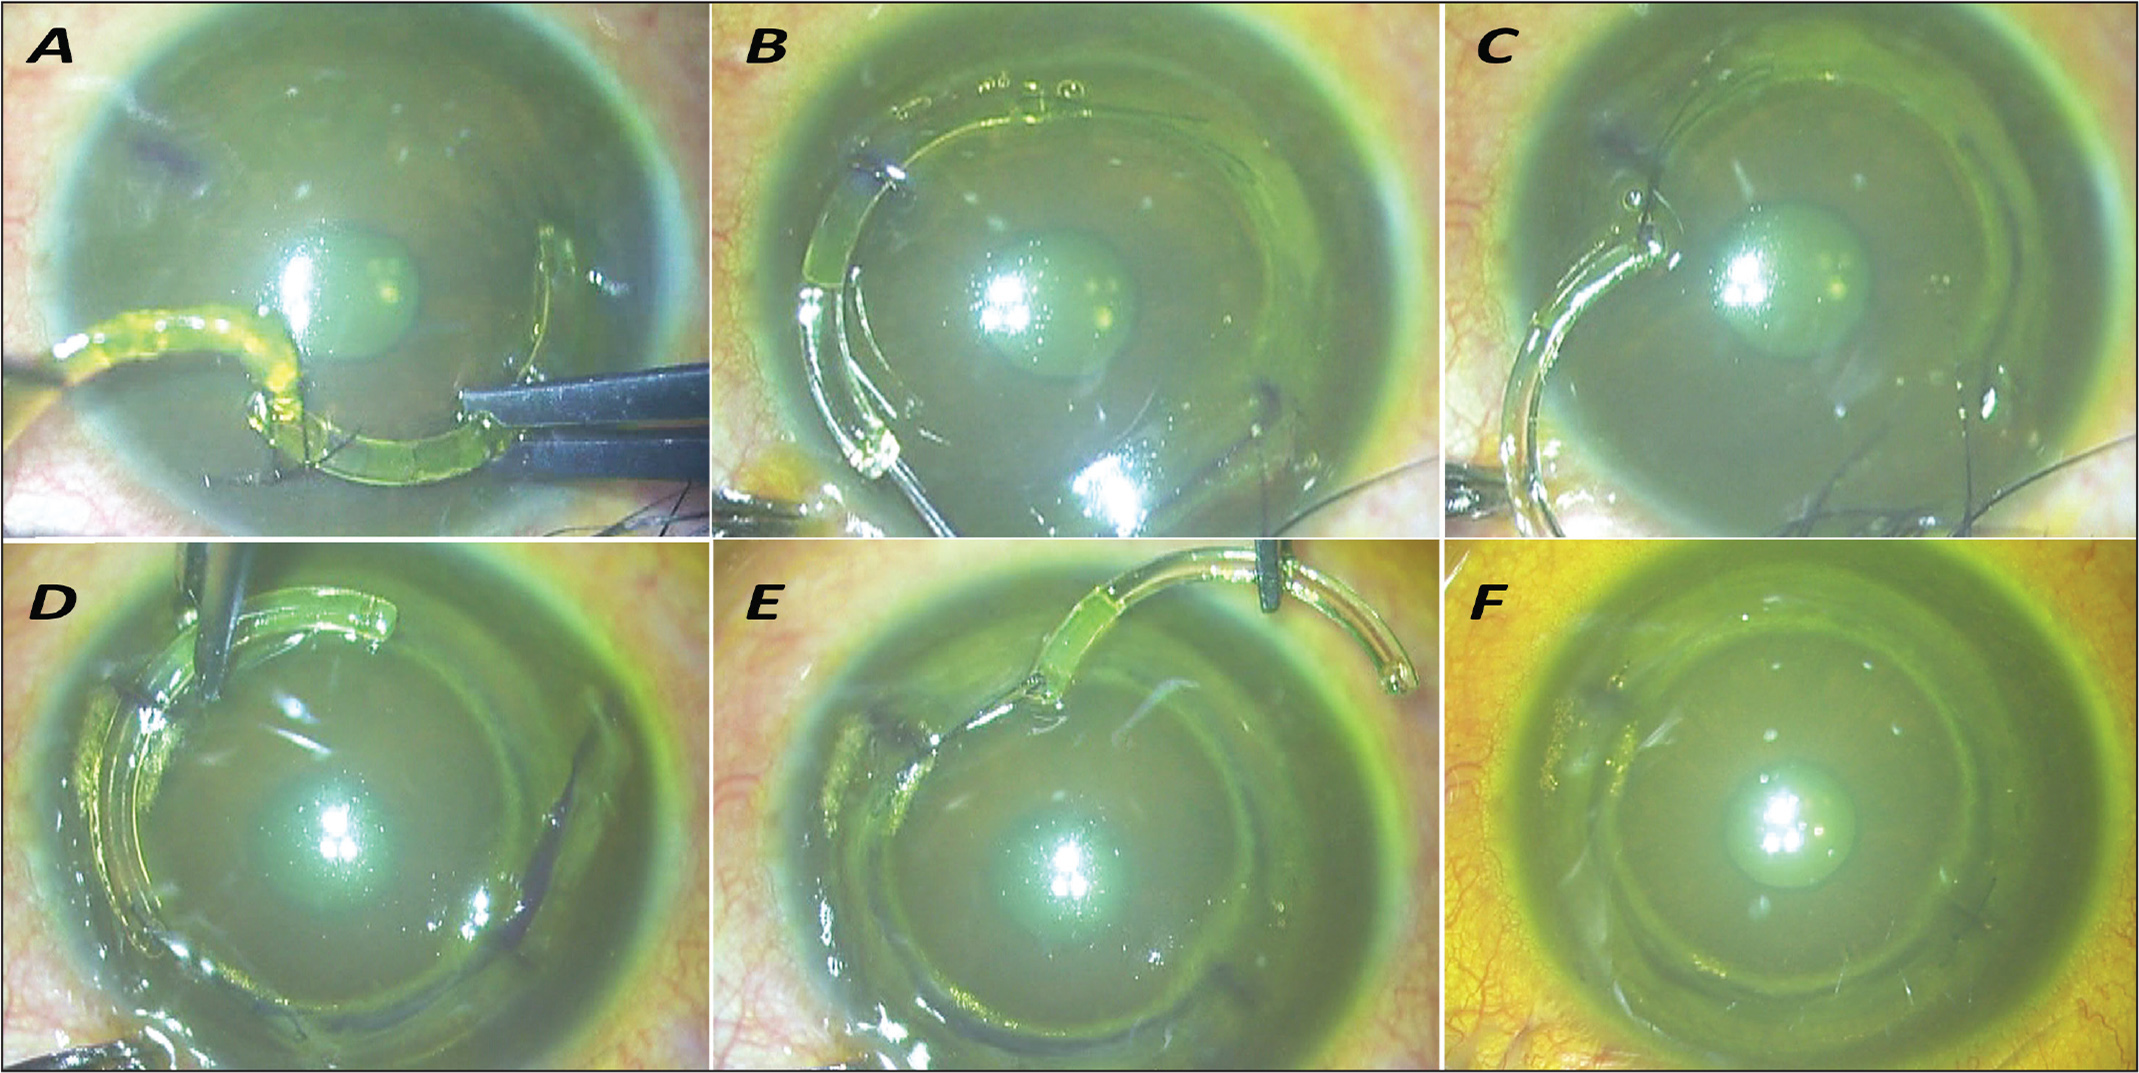 Corneal allogenic intrastromal ring segments (CAIRS) implantation. (A) Intacs (Addition Technology, Inc., Sunnyvale, CA) tied via the positioning hole to the CAIRS is passed through the femtosecond laser–dissected channel. (B) The CAIRS is pulled into the channel behind the Intacs. (C) Intacs is drawn out of the opposite incision, leaving the first CAIRS within the channel. (D–E) The same is repeated on the other side. (F) Both CAIRS are seen lying within the femtosecond laser–dissected channel.